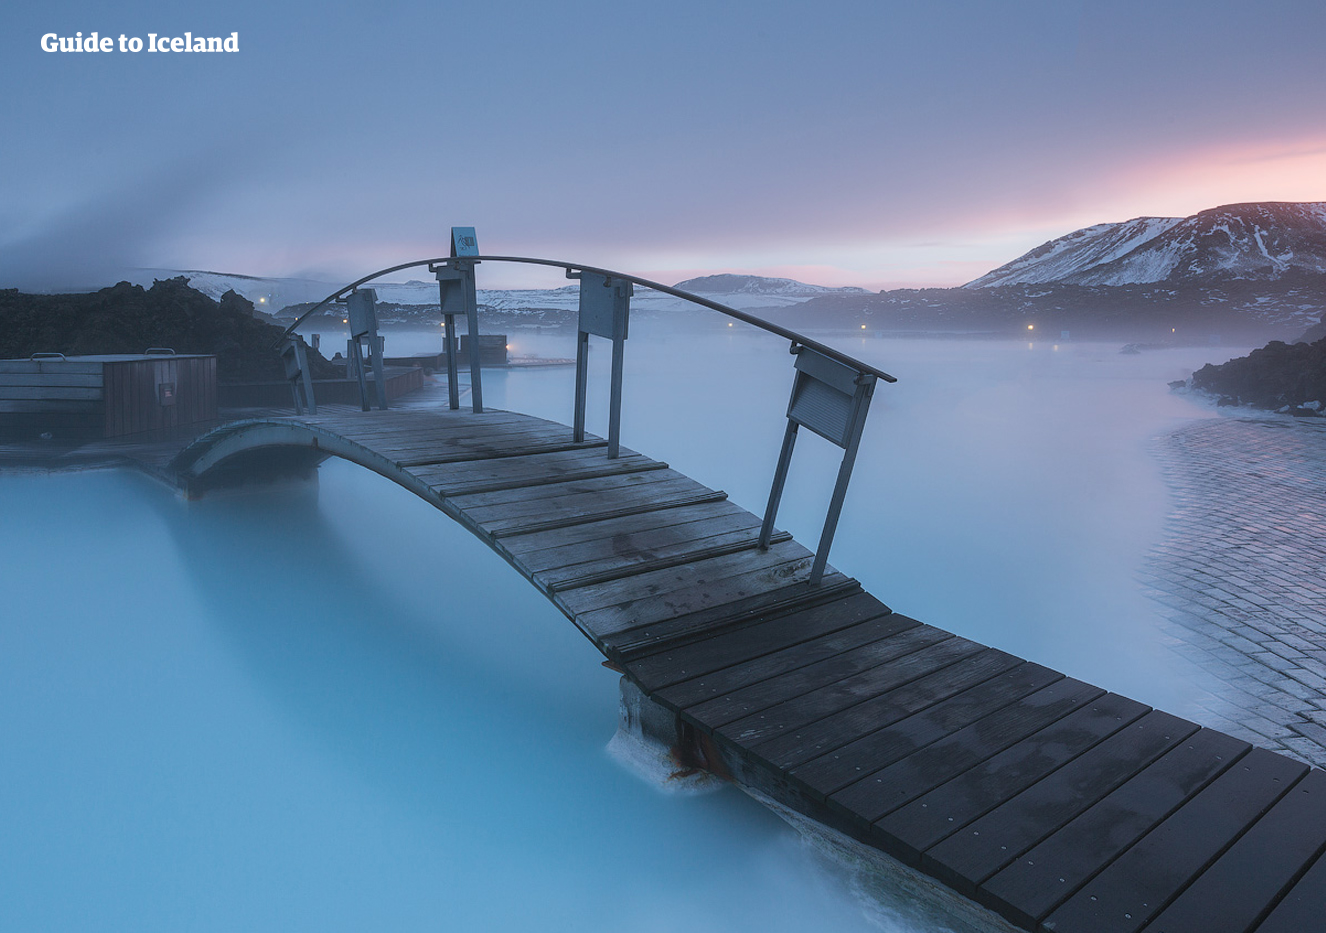 The Blue Lagoon's natural heat rising in a winter landscape.